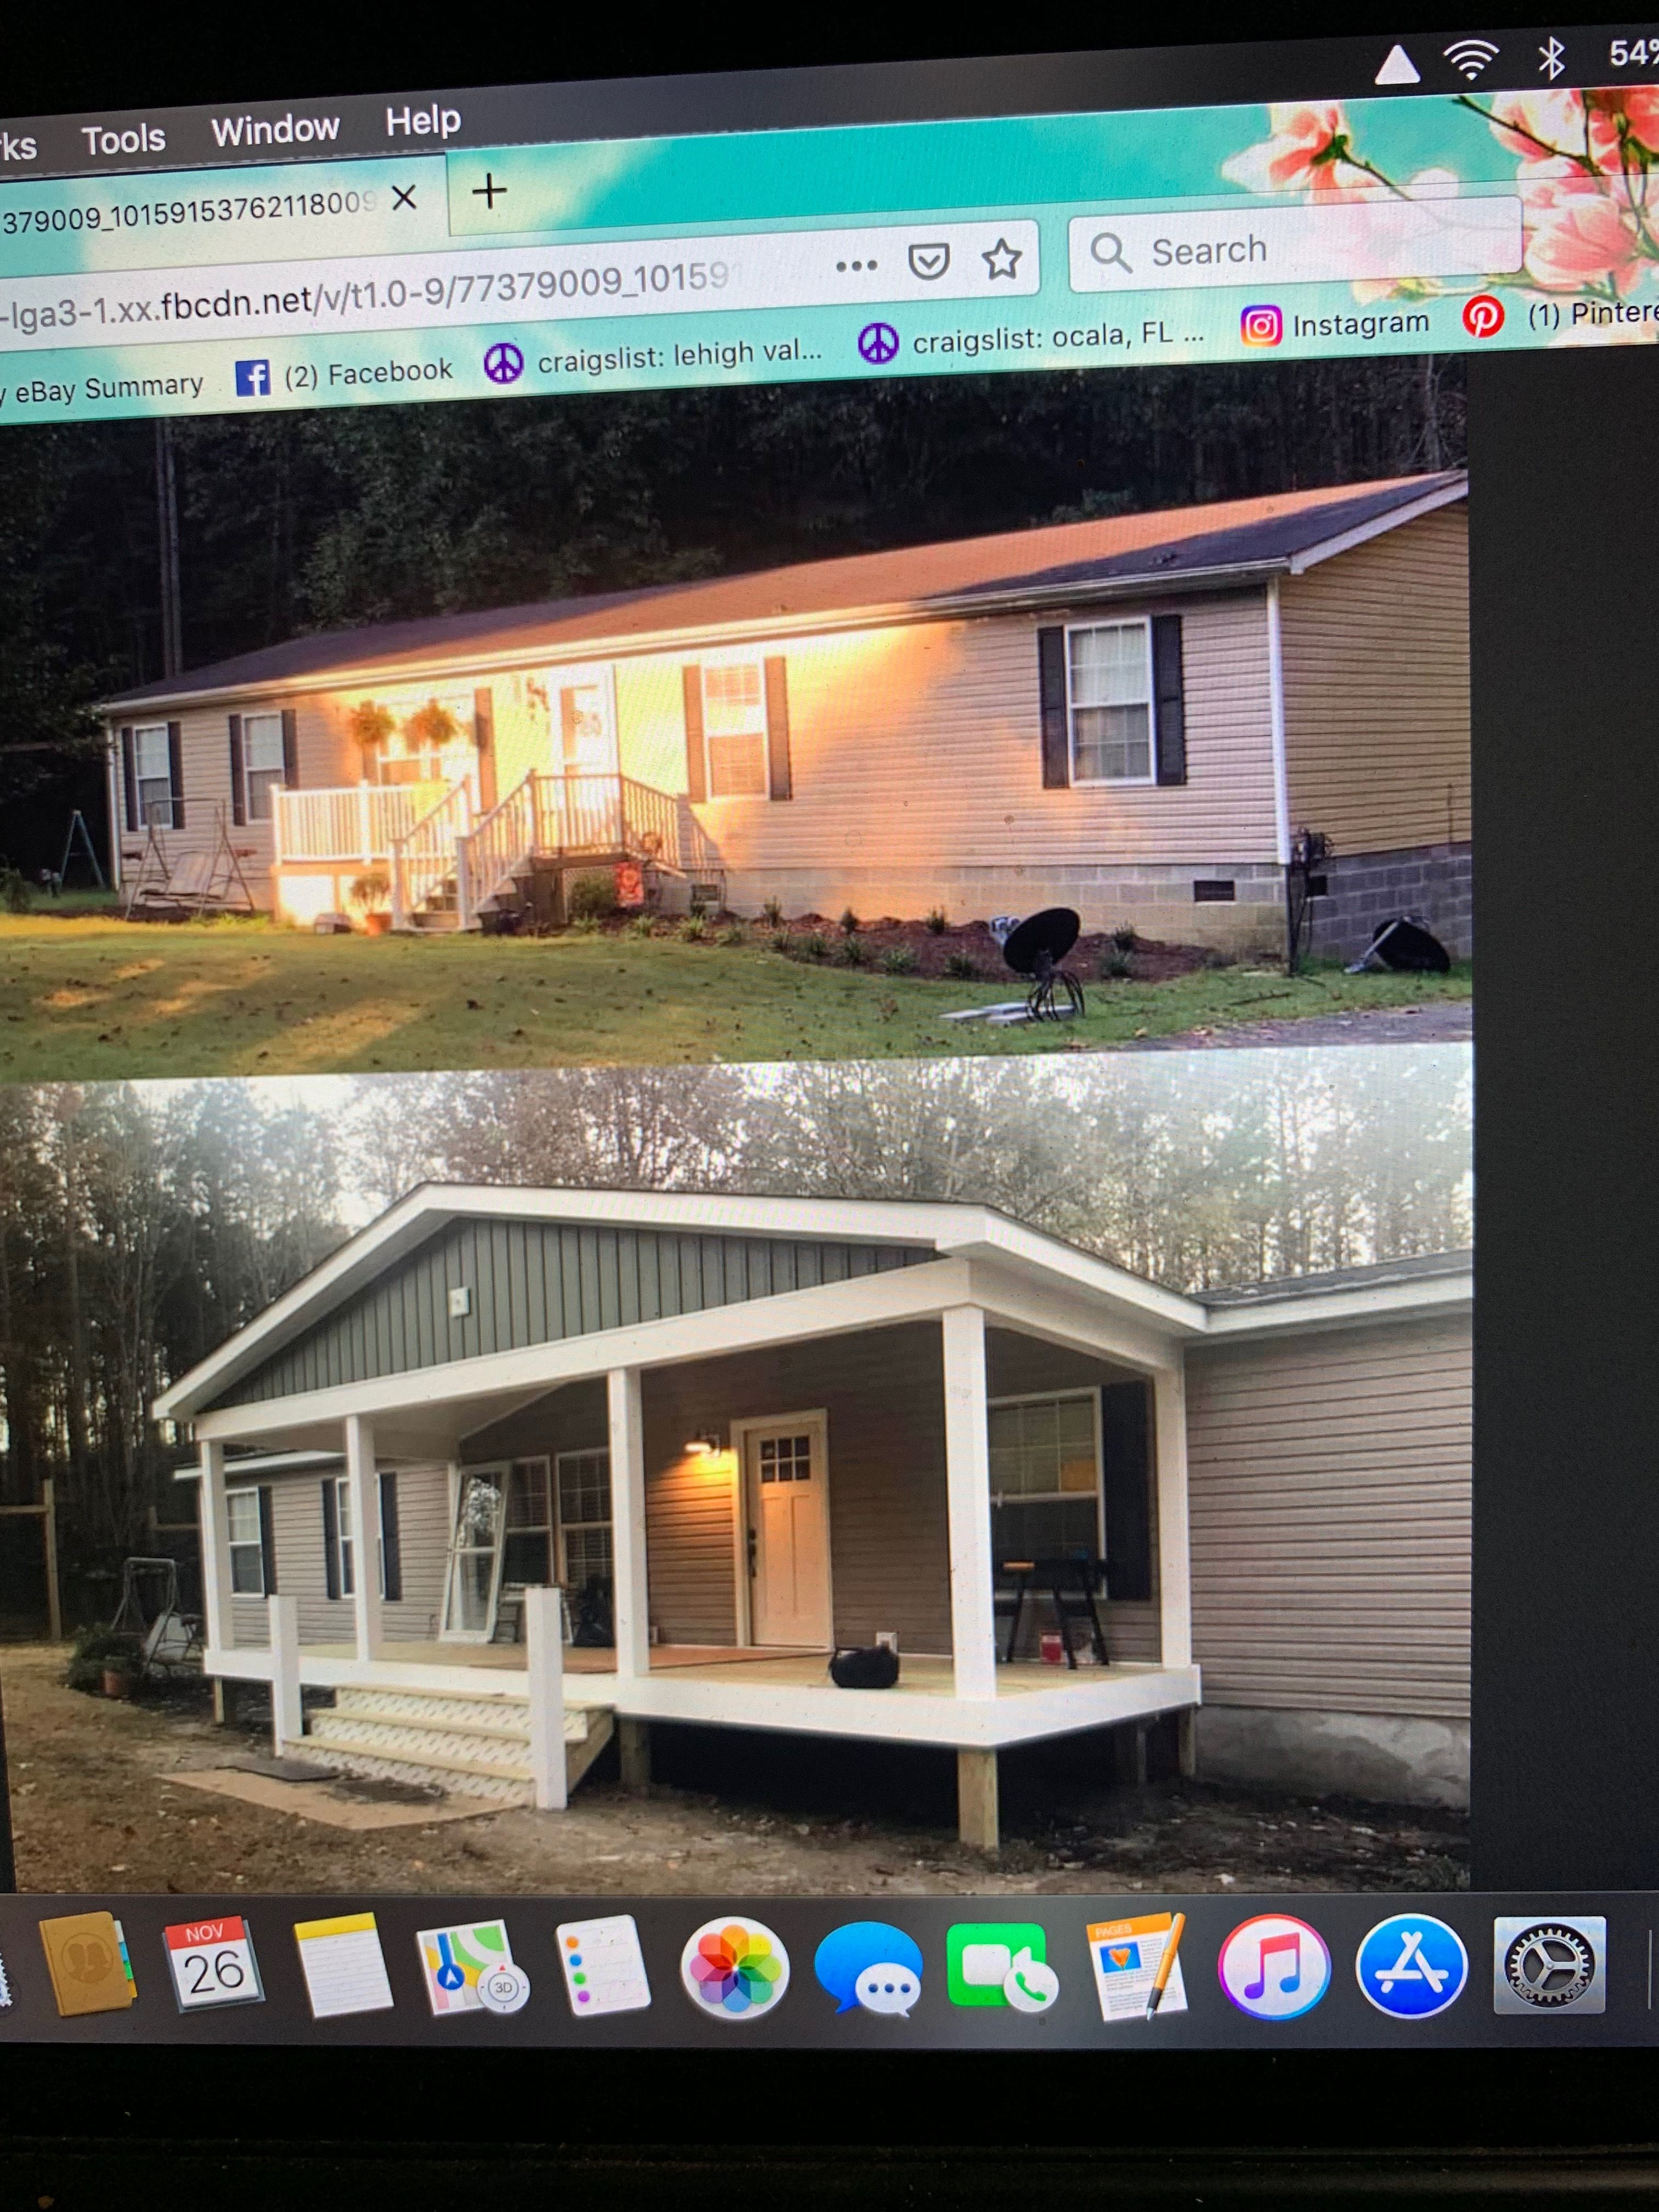 Craigslist Ocala Florida With tools for job search, resumes, company reviews and more, we're with you every step of the way. cragslist and job search